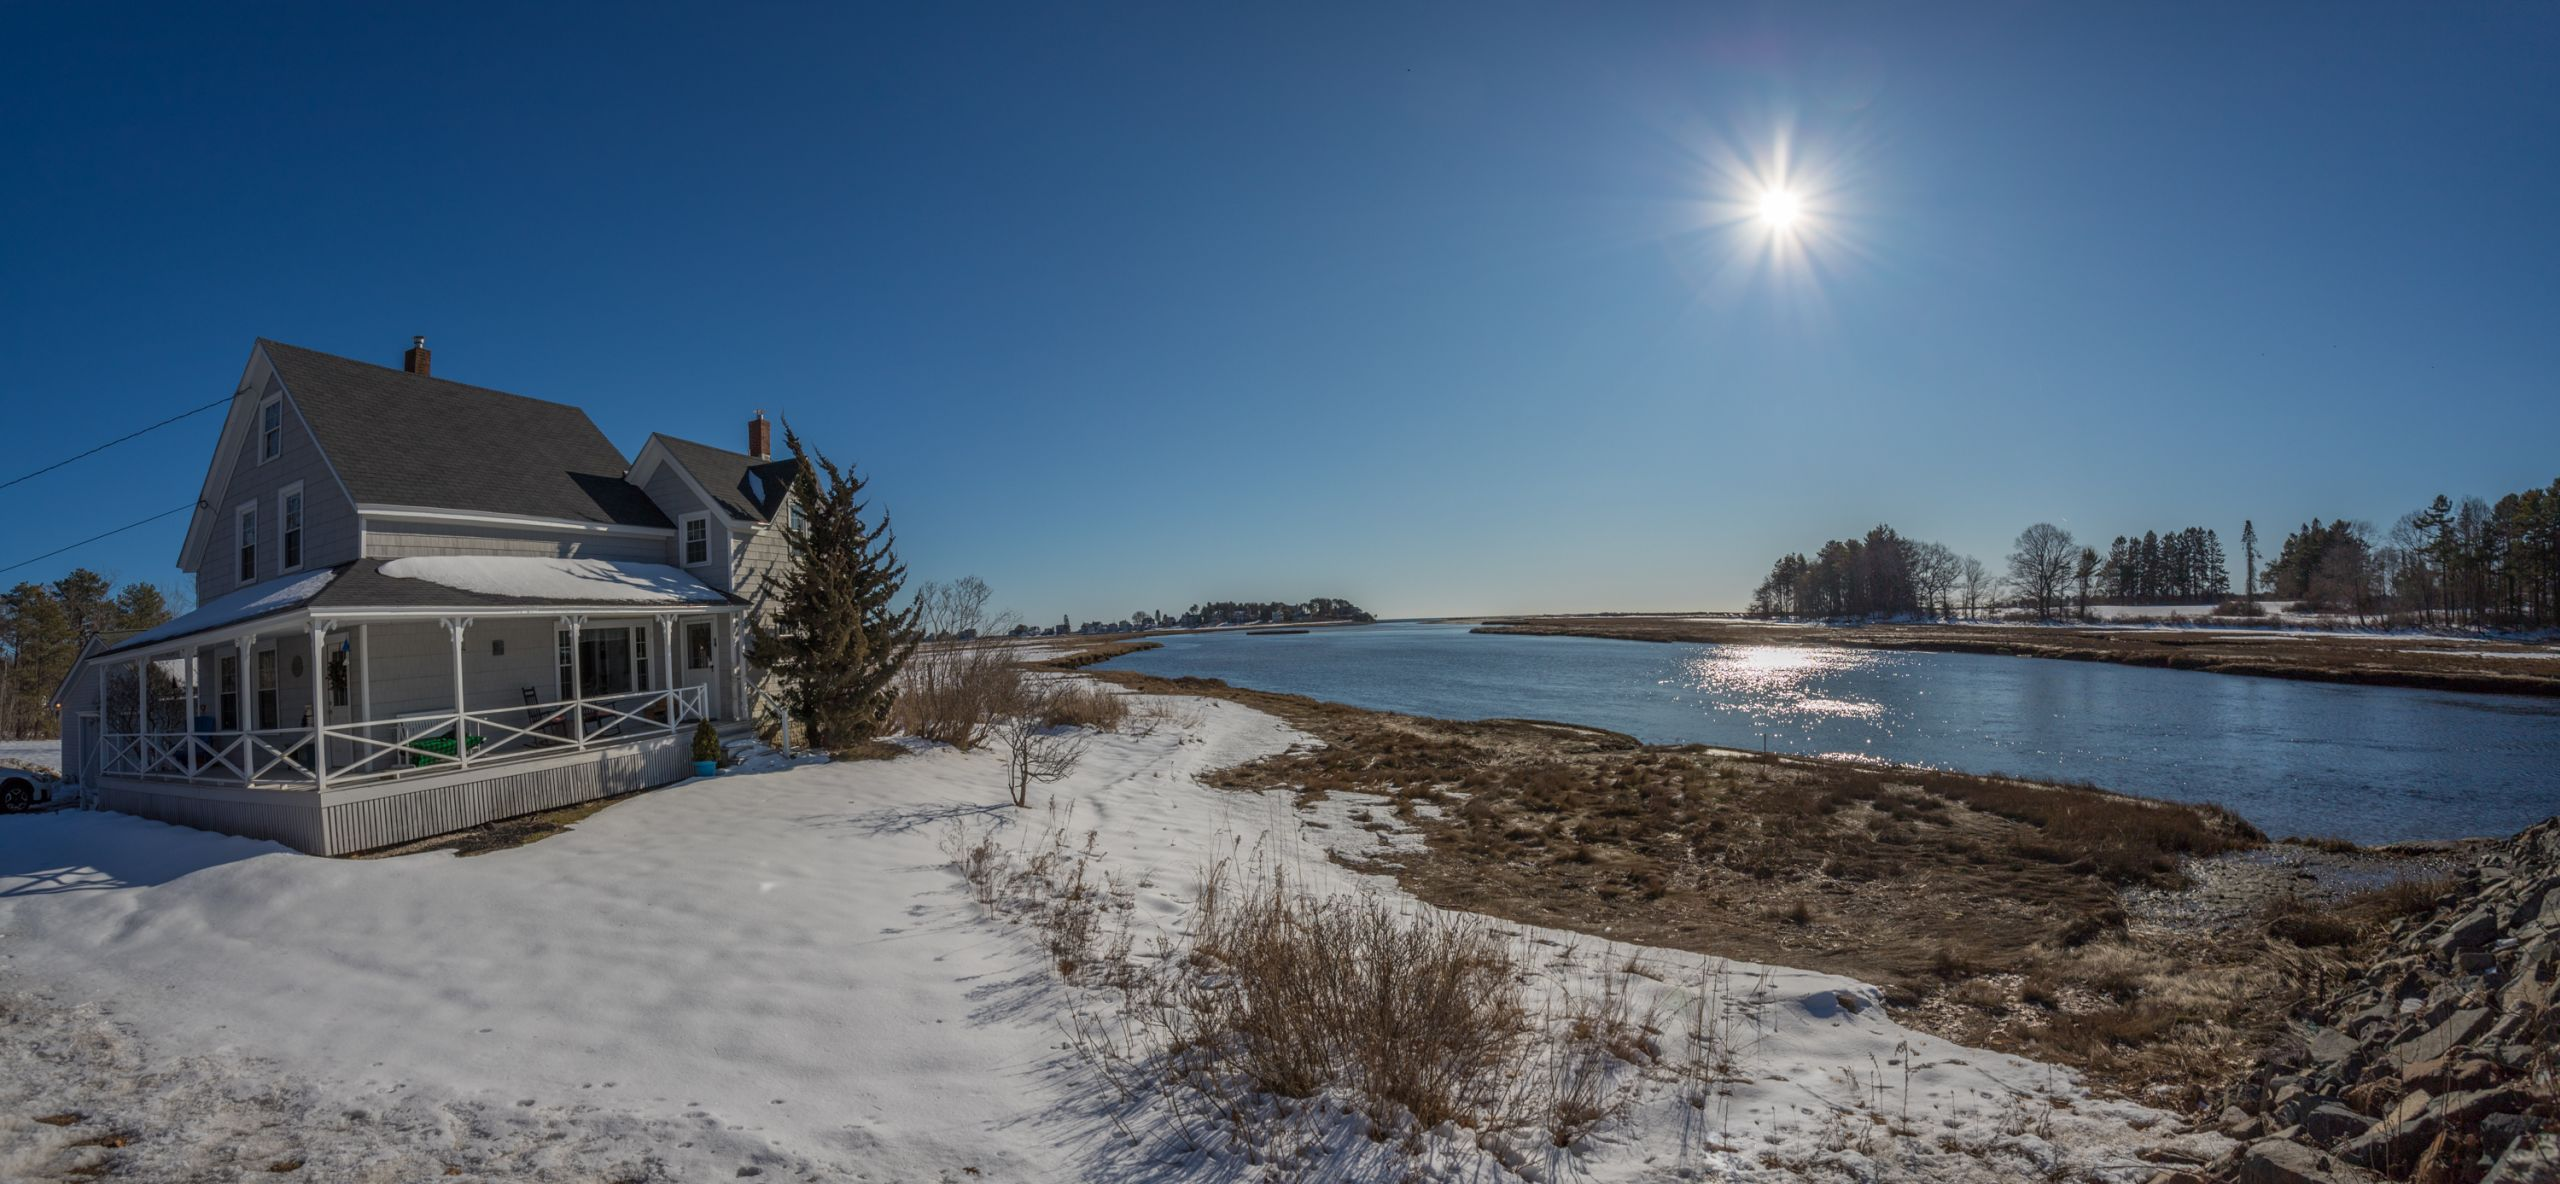 NEW PRICE - RIVERFRONT - 206 Western Ave Kennebunk $825,000